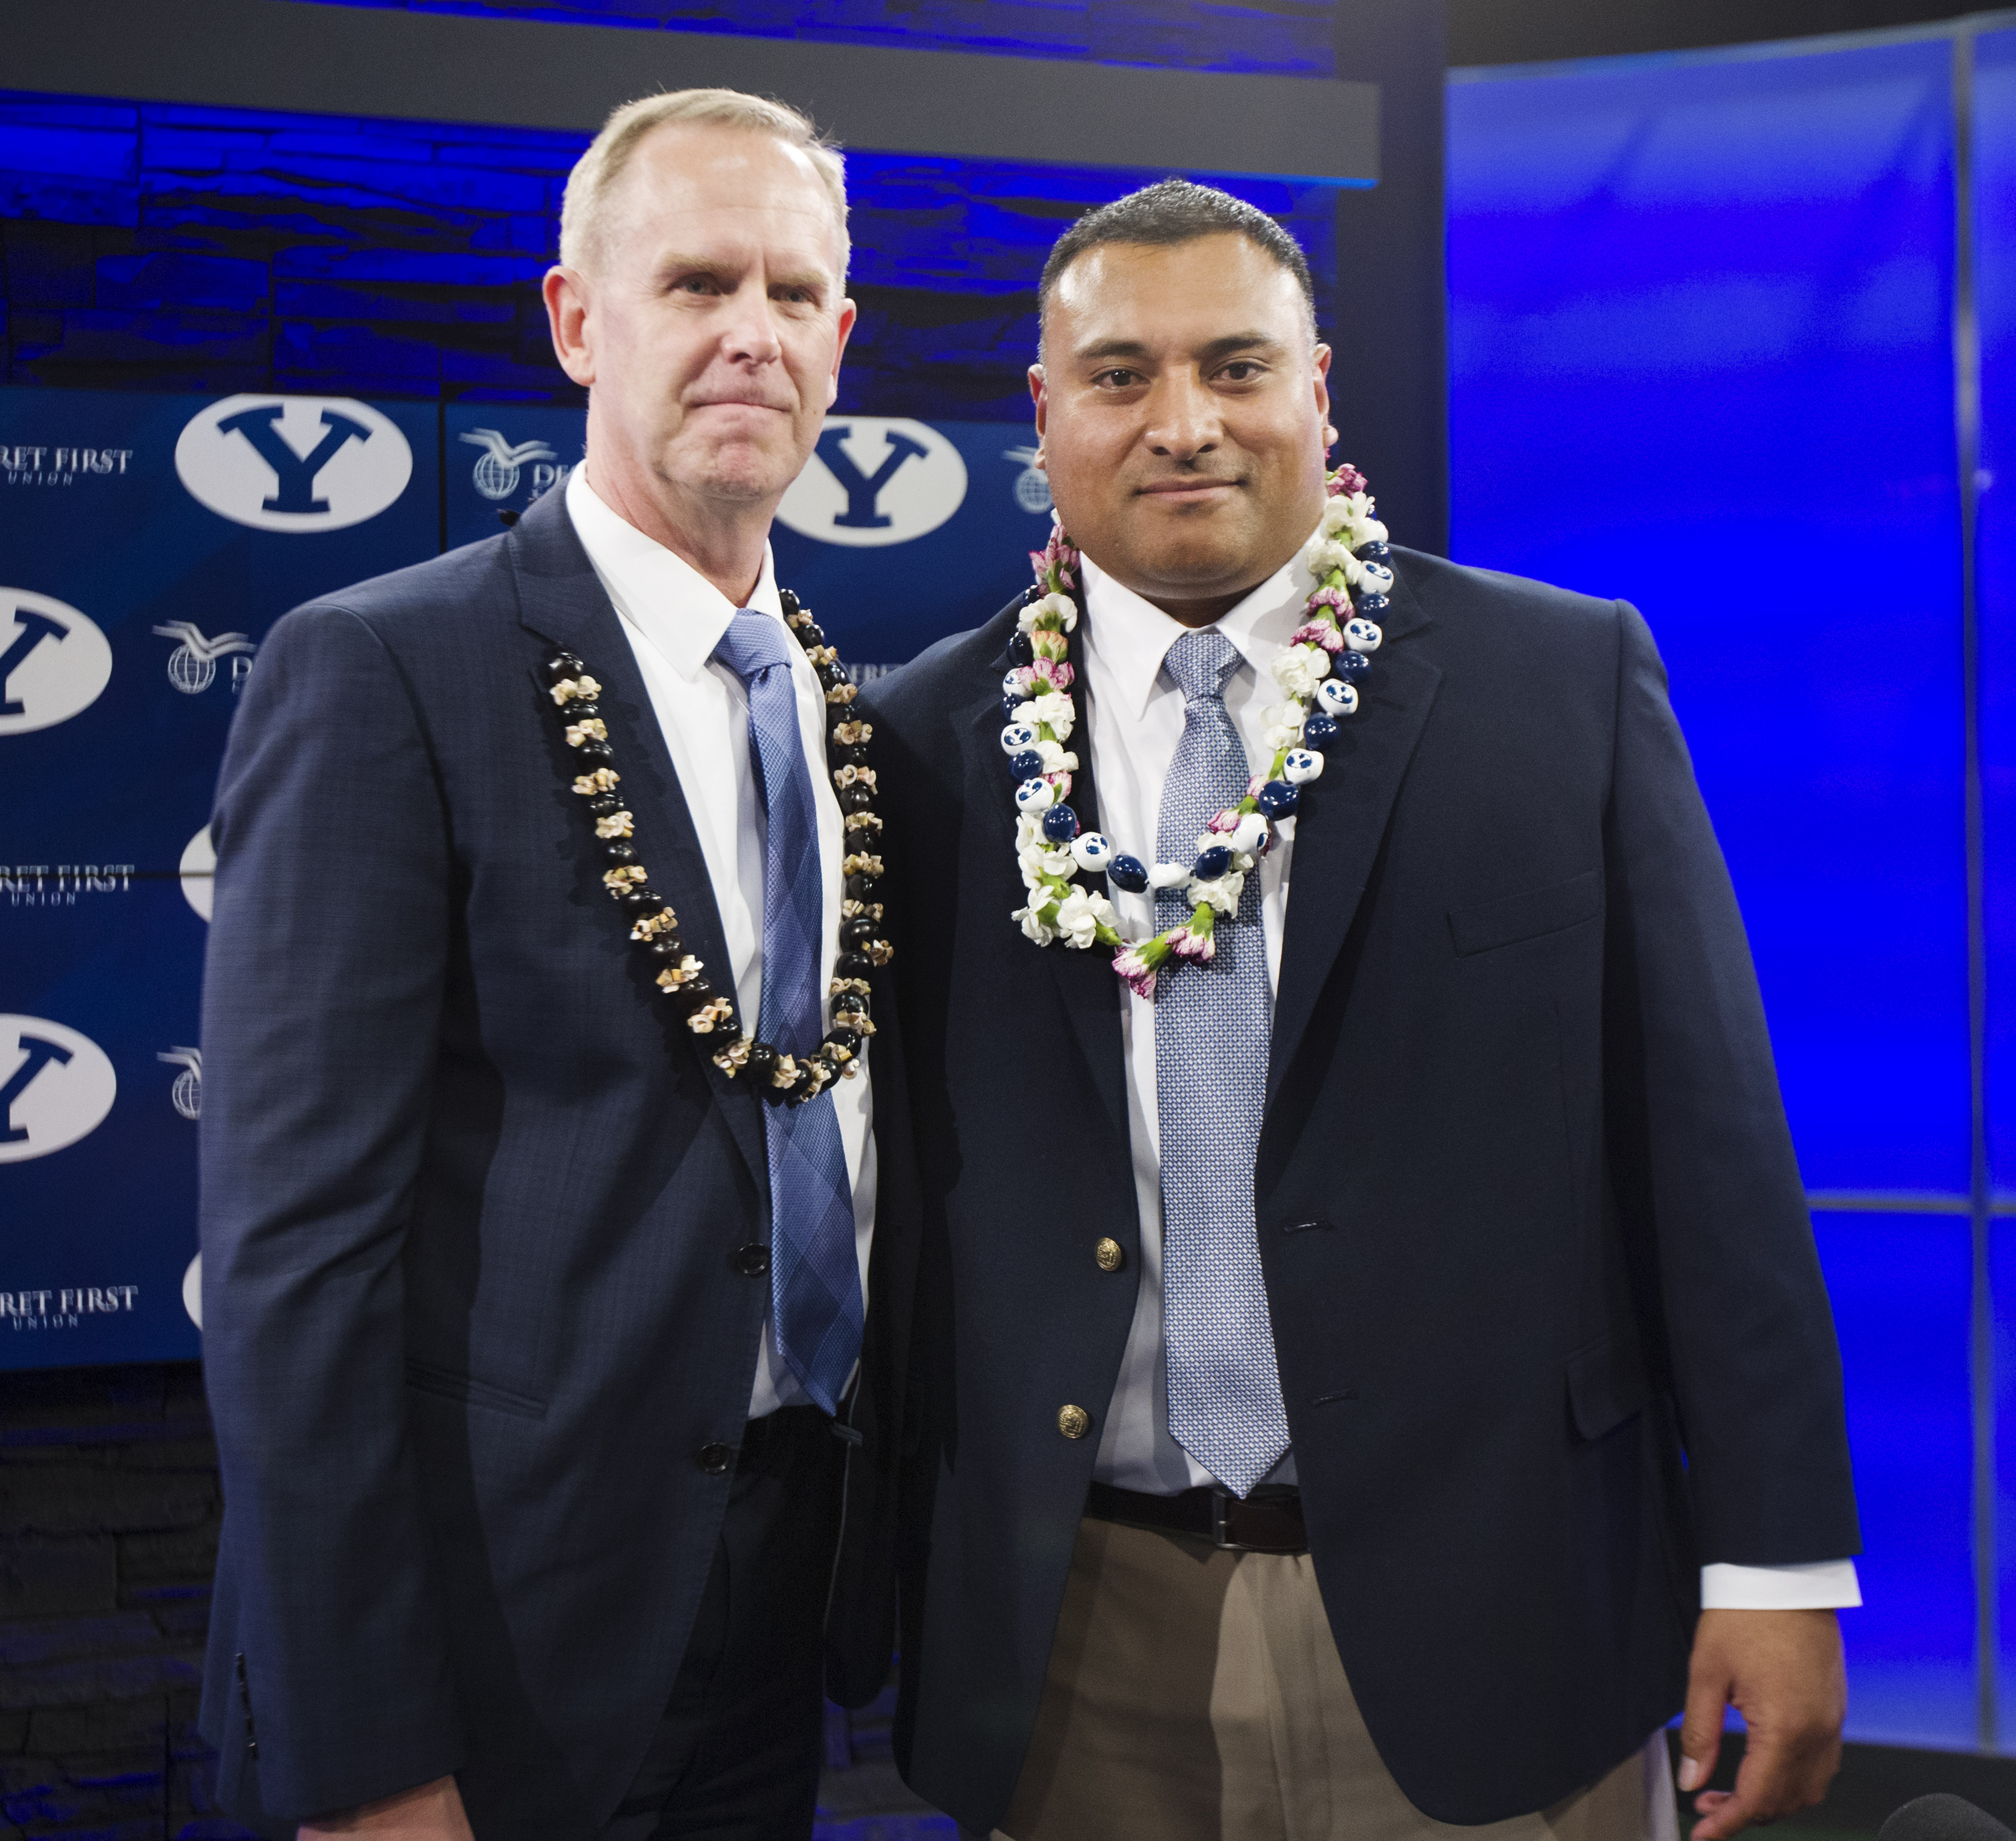 BYU athletic director Tom Holmoe, left, poses with new head football coach Kalani Sitake following a press conference in Provo Monday, Dec. 21, 2015.